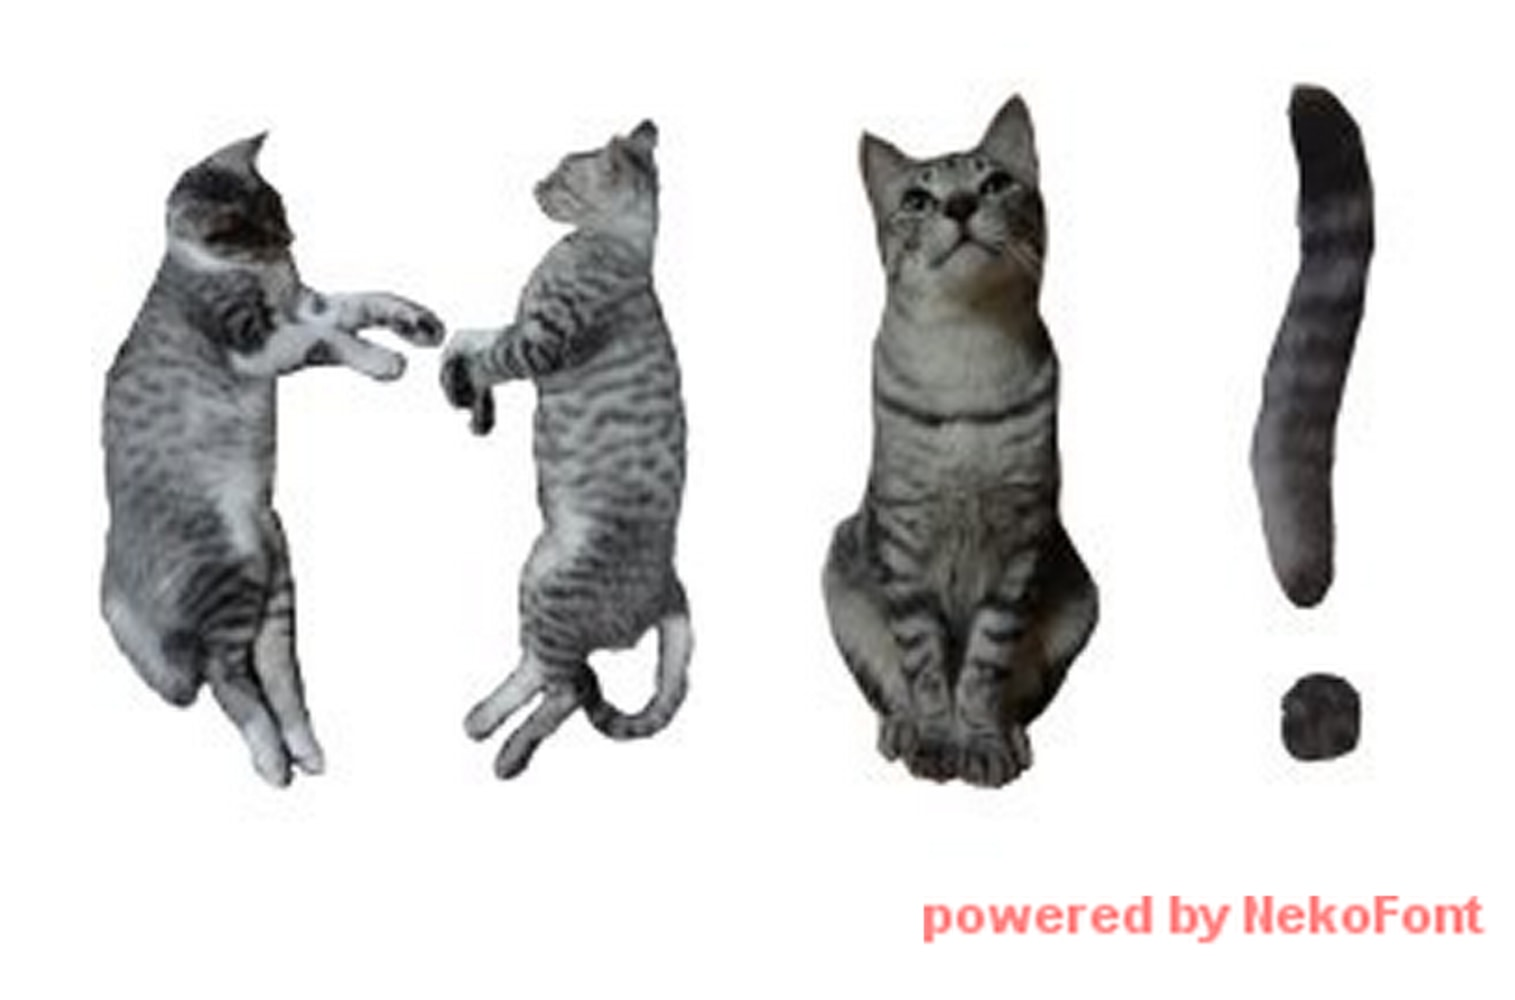 There is now a fontmade entirely of cats